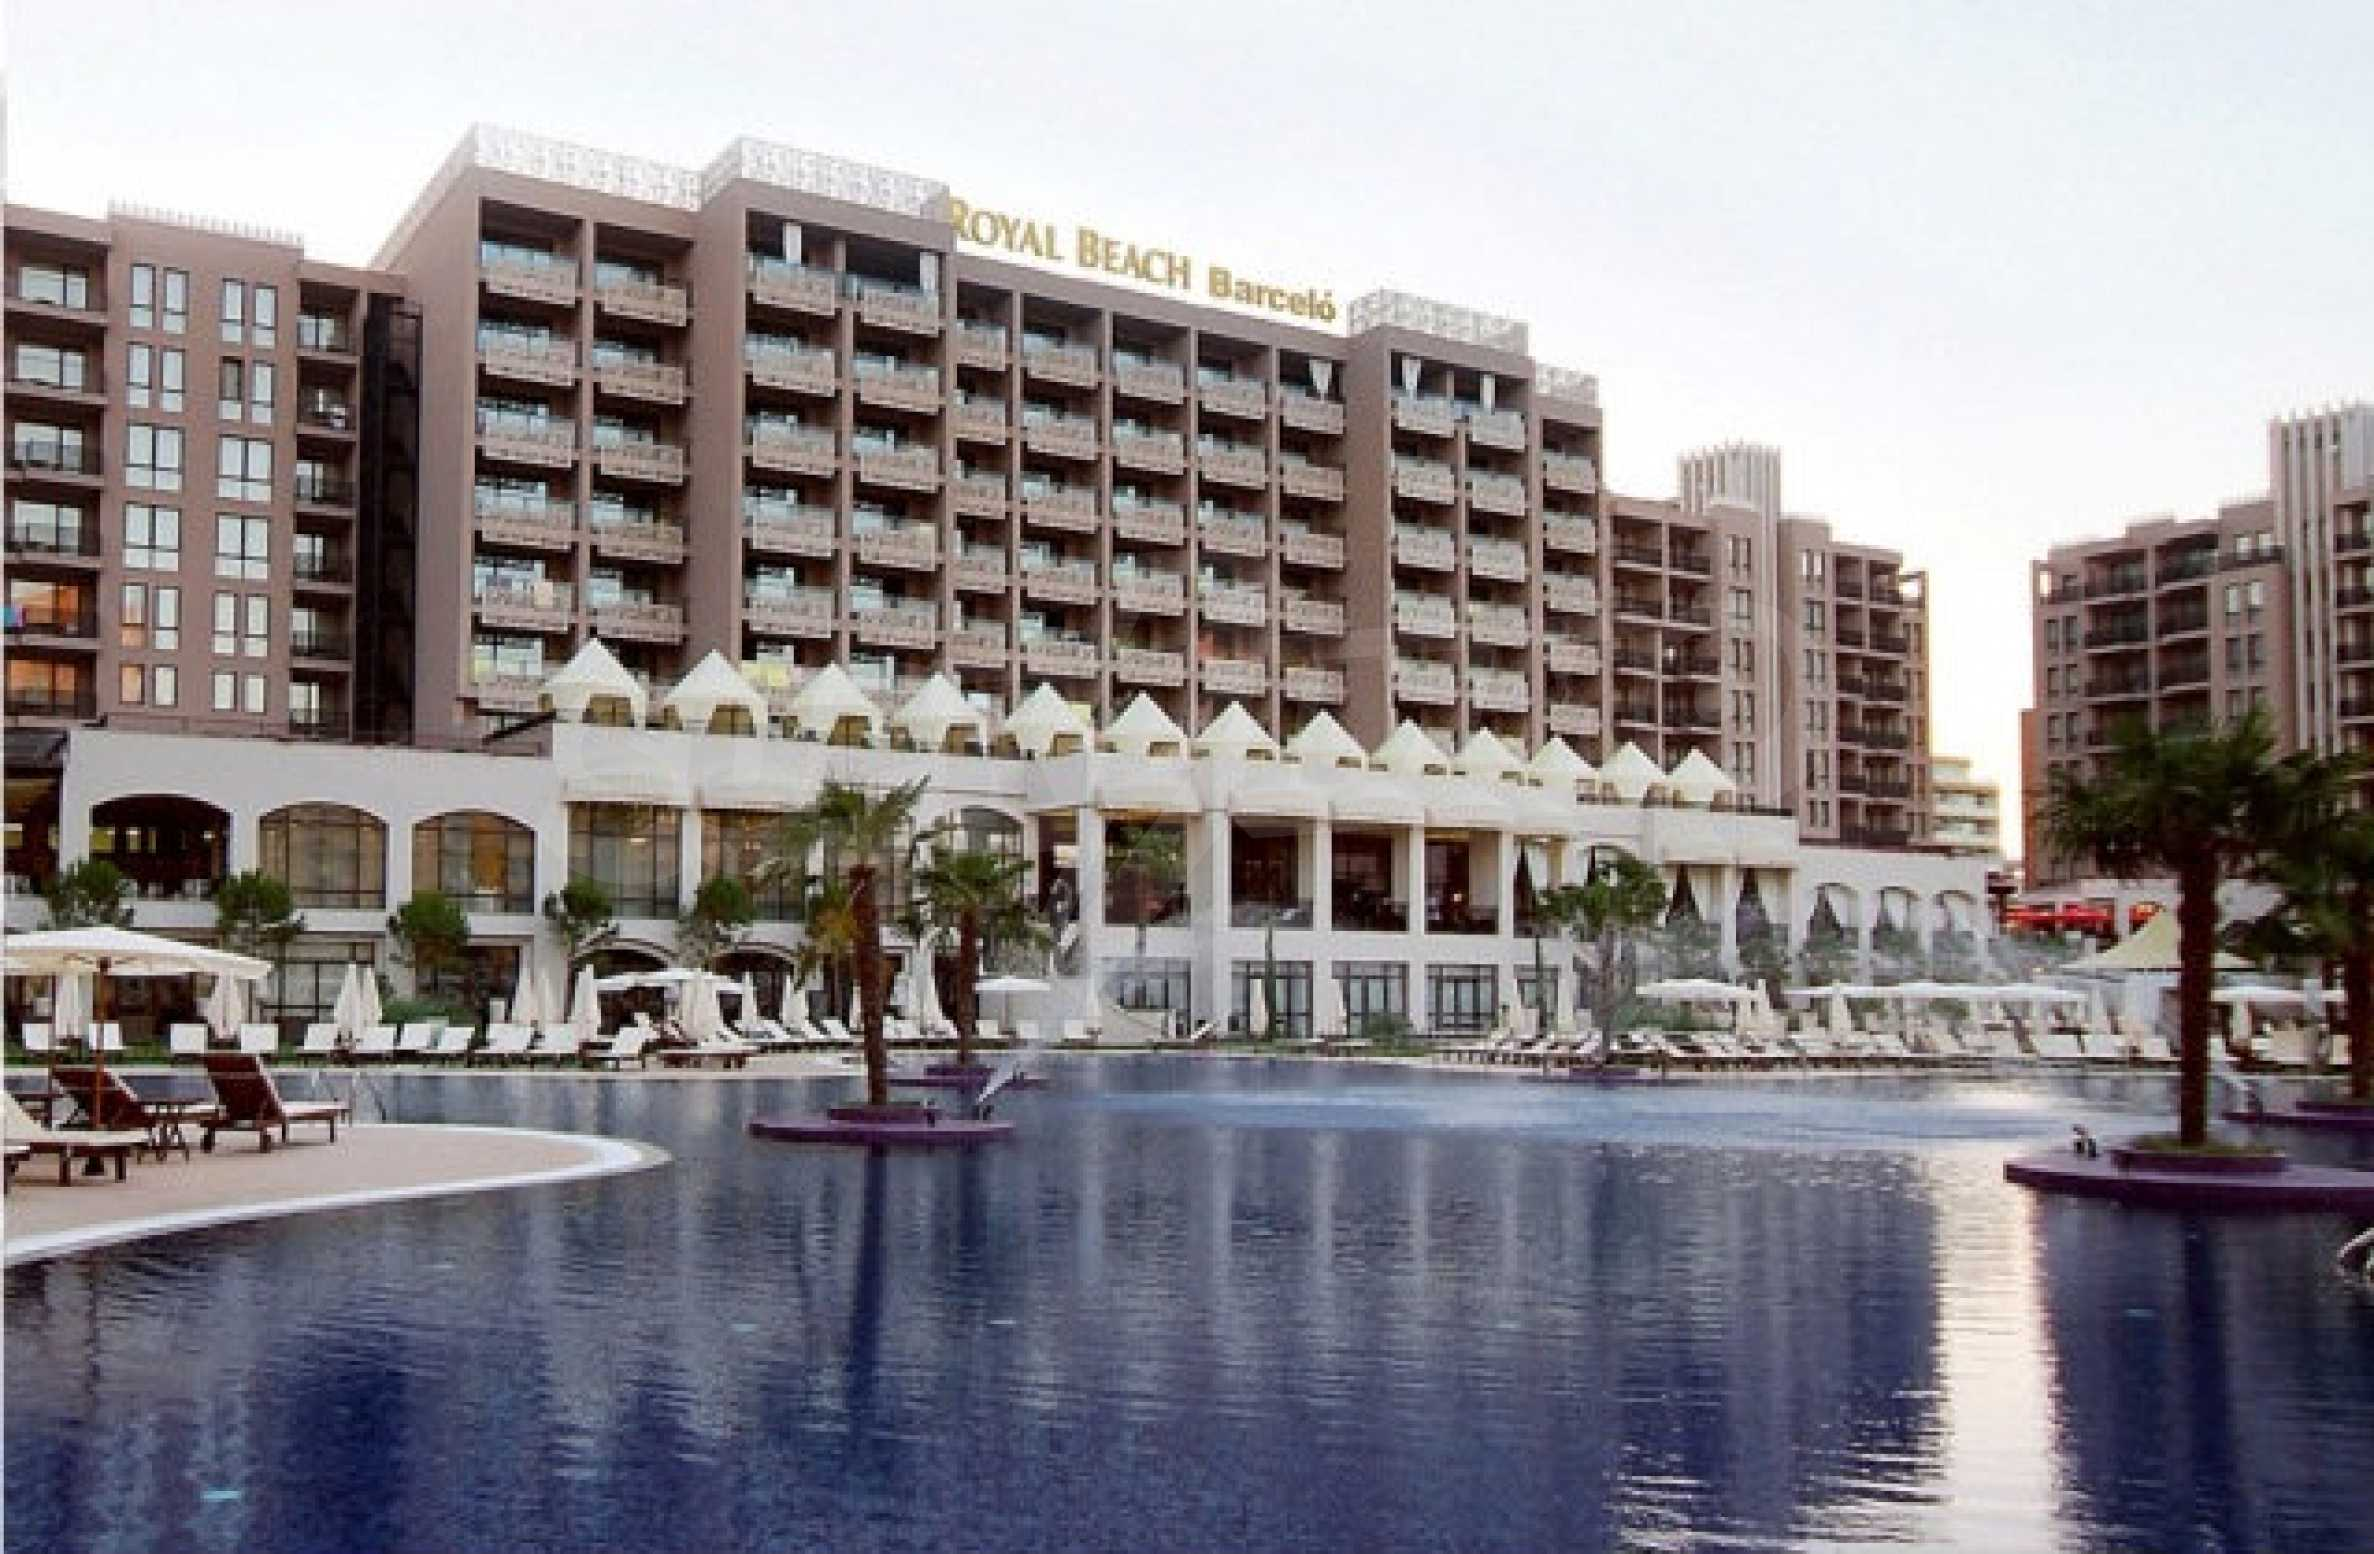 One-bedroom apartment in Royal Beach Barcelo complex in Sunny Beach 1